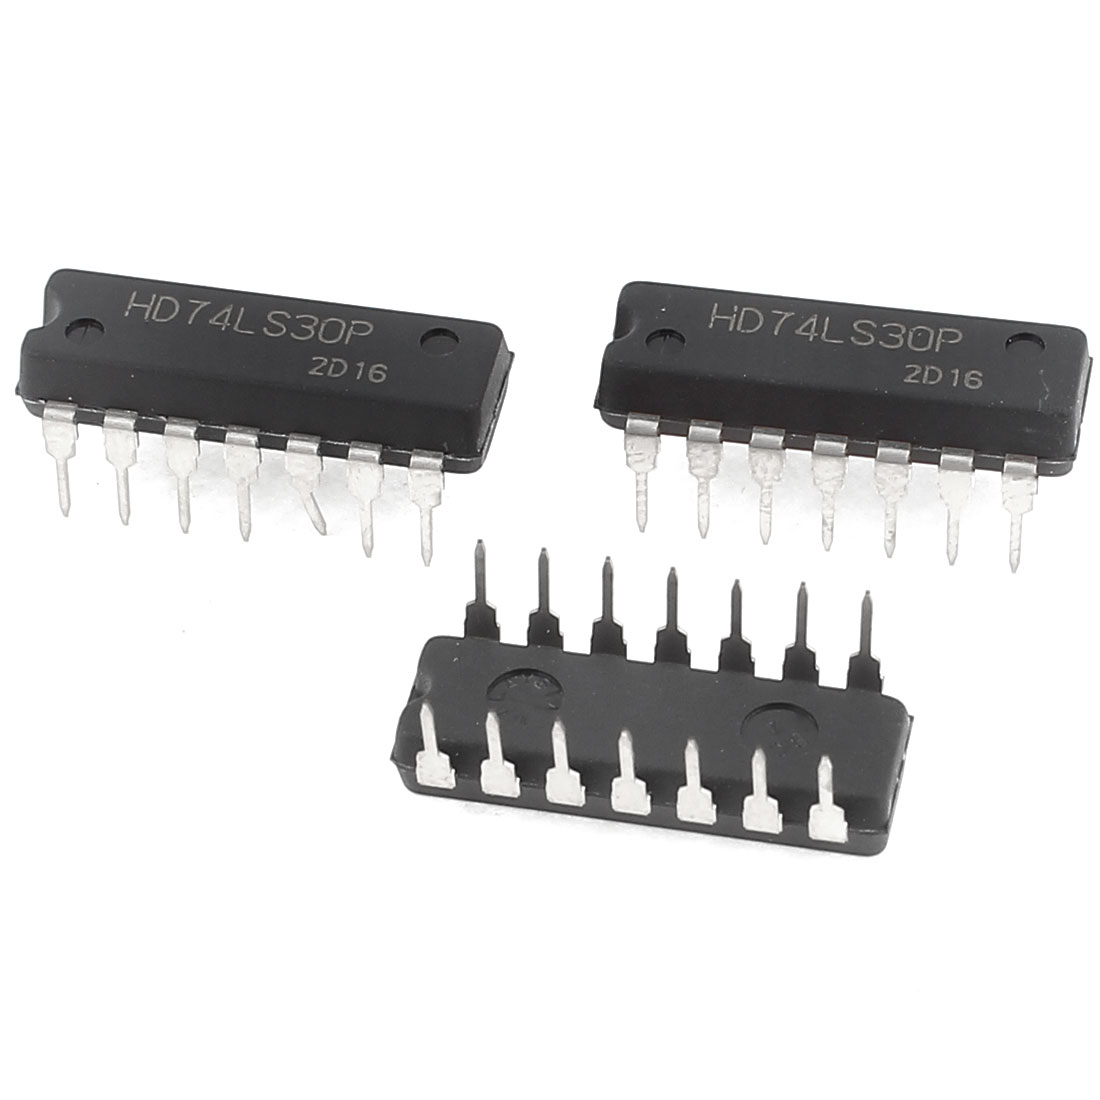 3pcs HD74LS30P DIP Type 14Pins IC 8-Input Positive NAND Gates